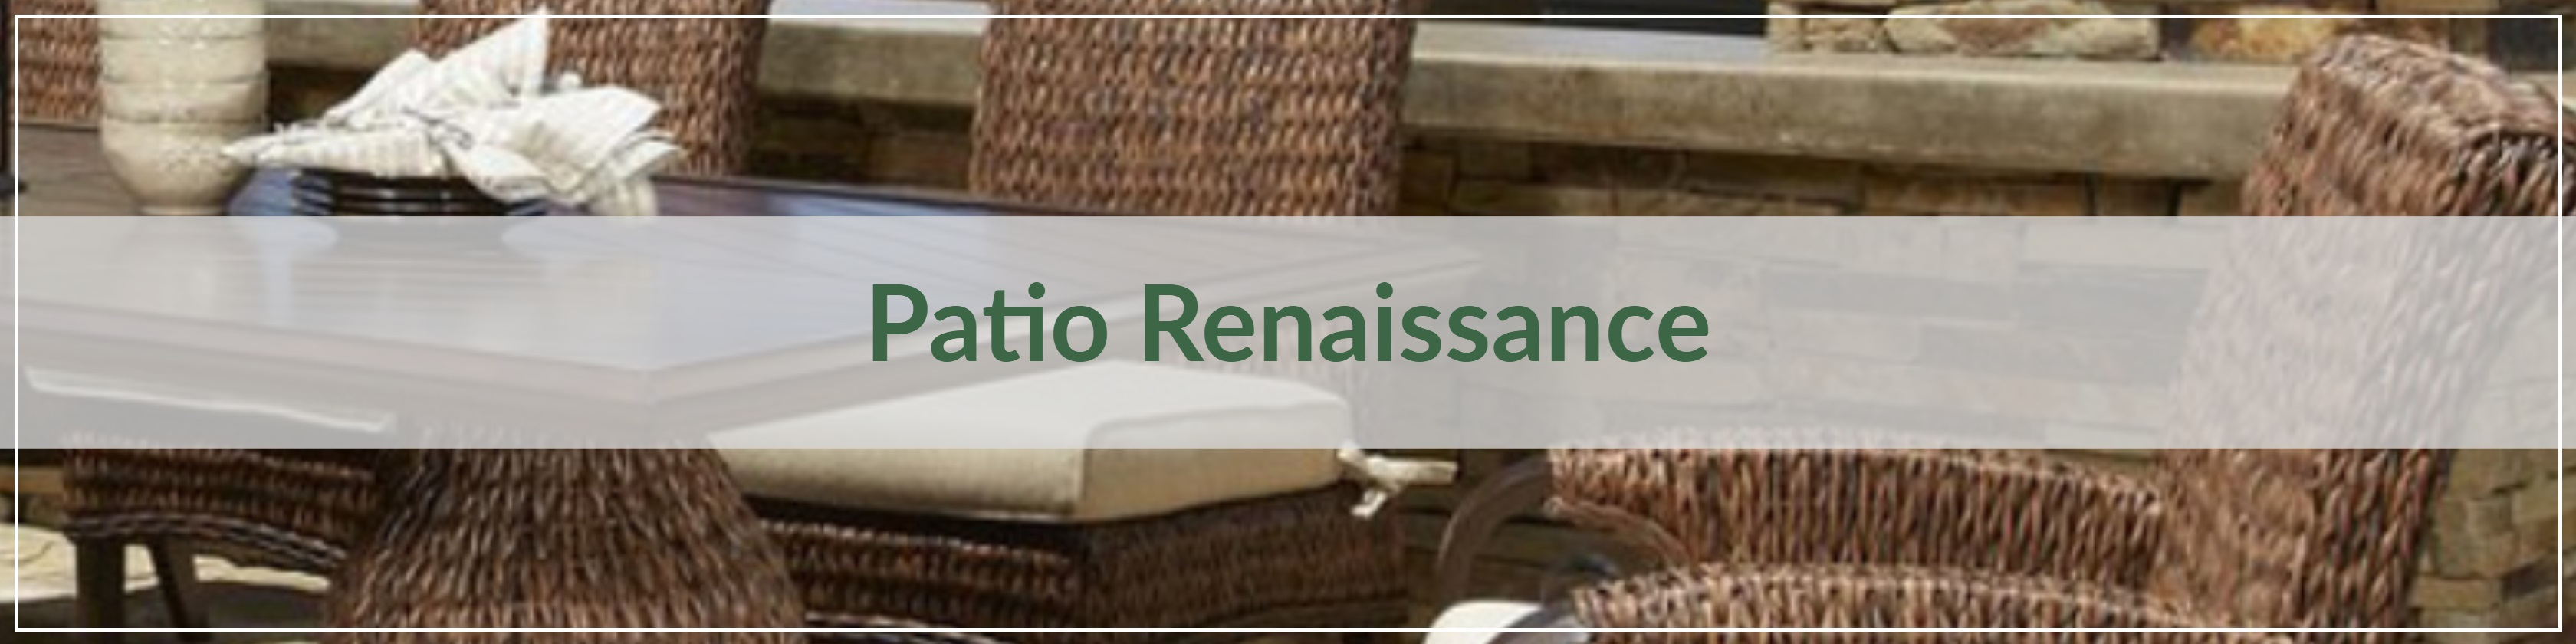 Patio Renaissance Resin Wicker Dining